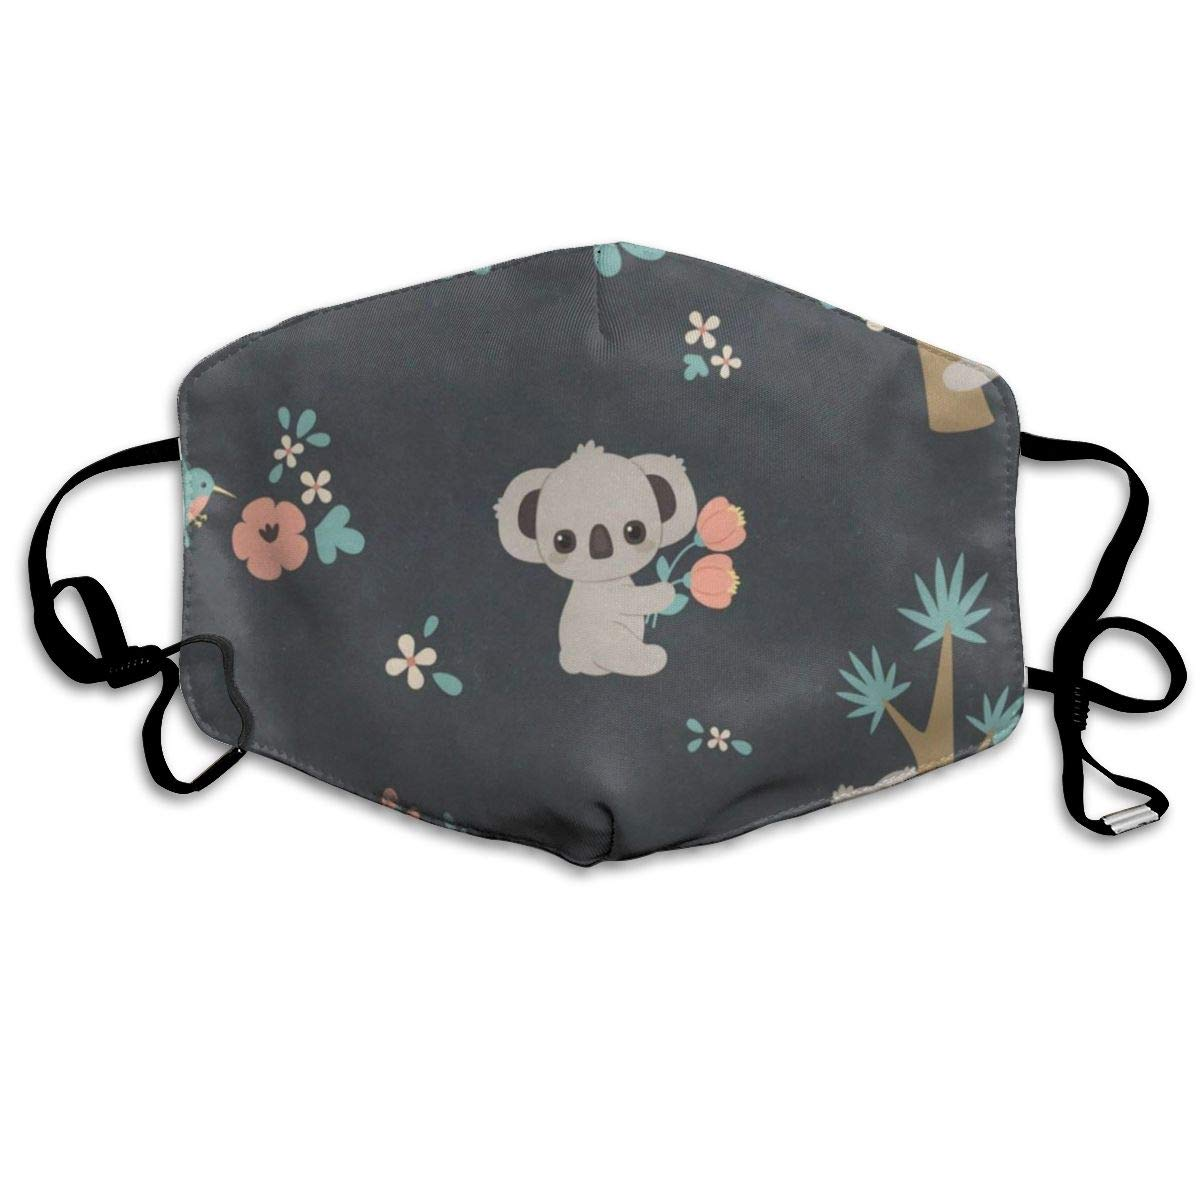 Koala Laying On Branch Personalized Dust Mouth Mask Reusable Anti-Dust Face Mask Adjustable Earloop Skin Protection